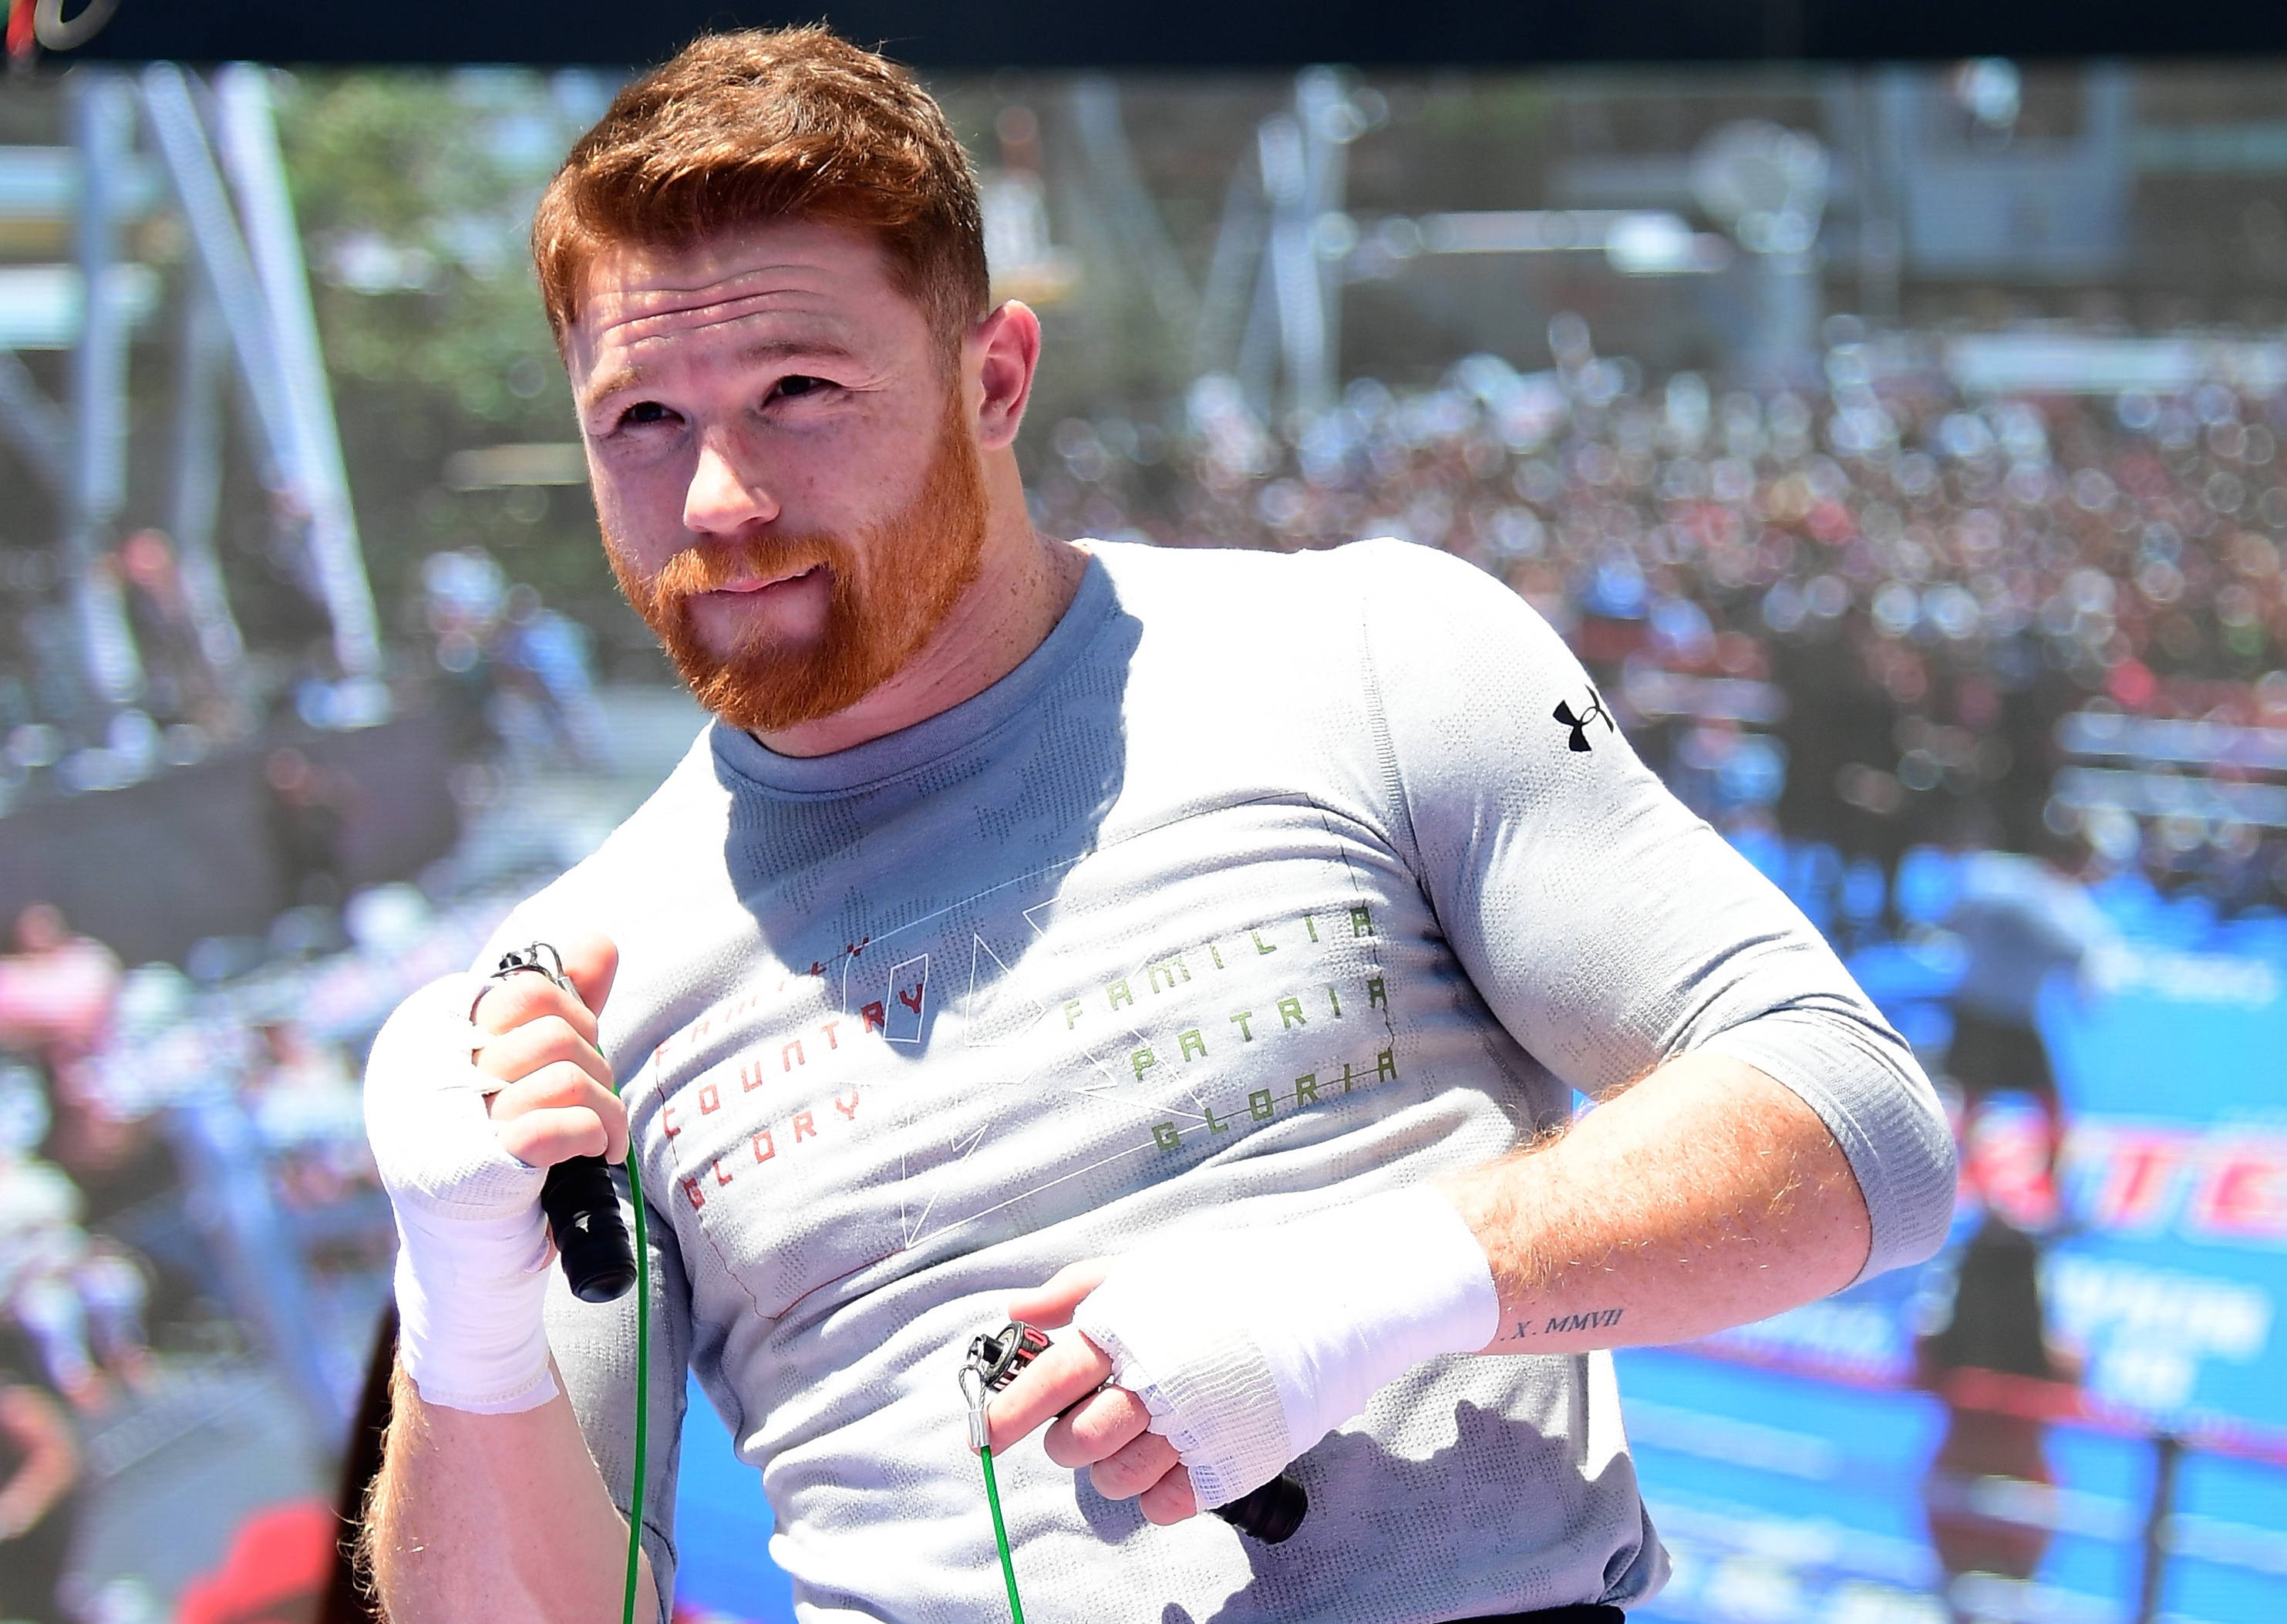 When Canelo Takes on GGG, He Will Be an Underdog For the First Time Since 2013 Mayweather Fight